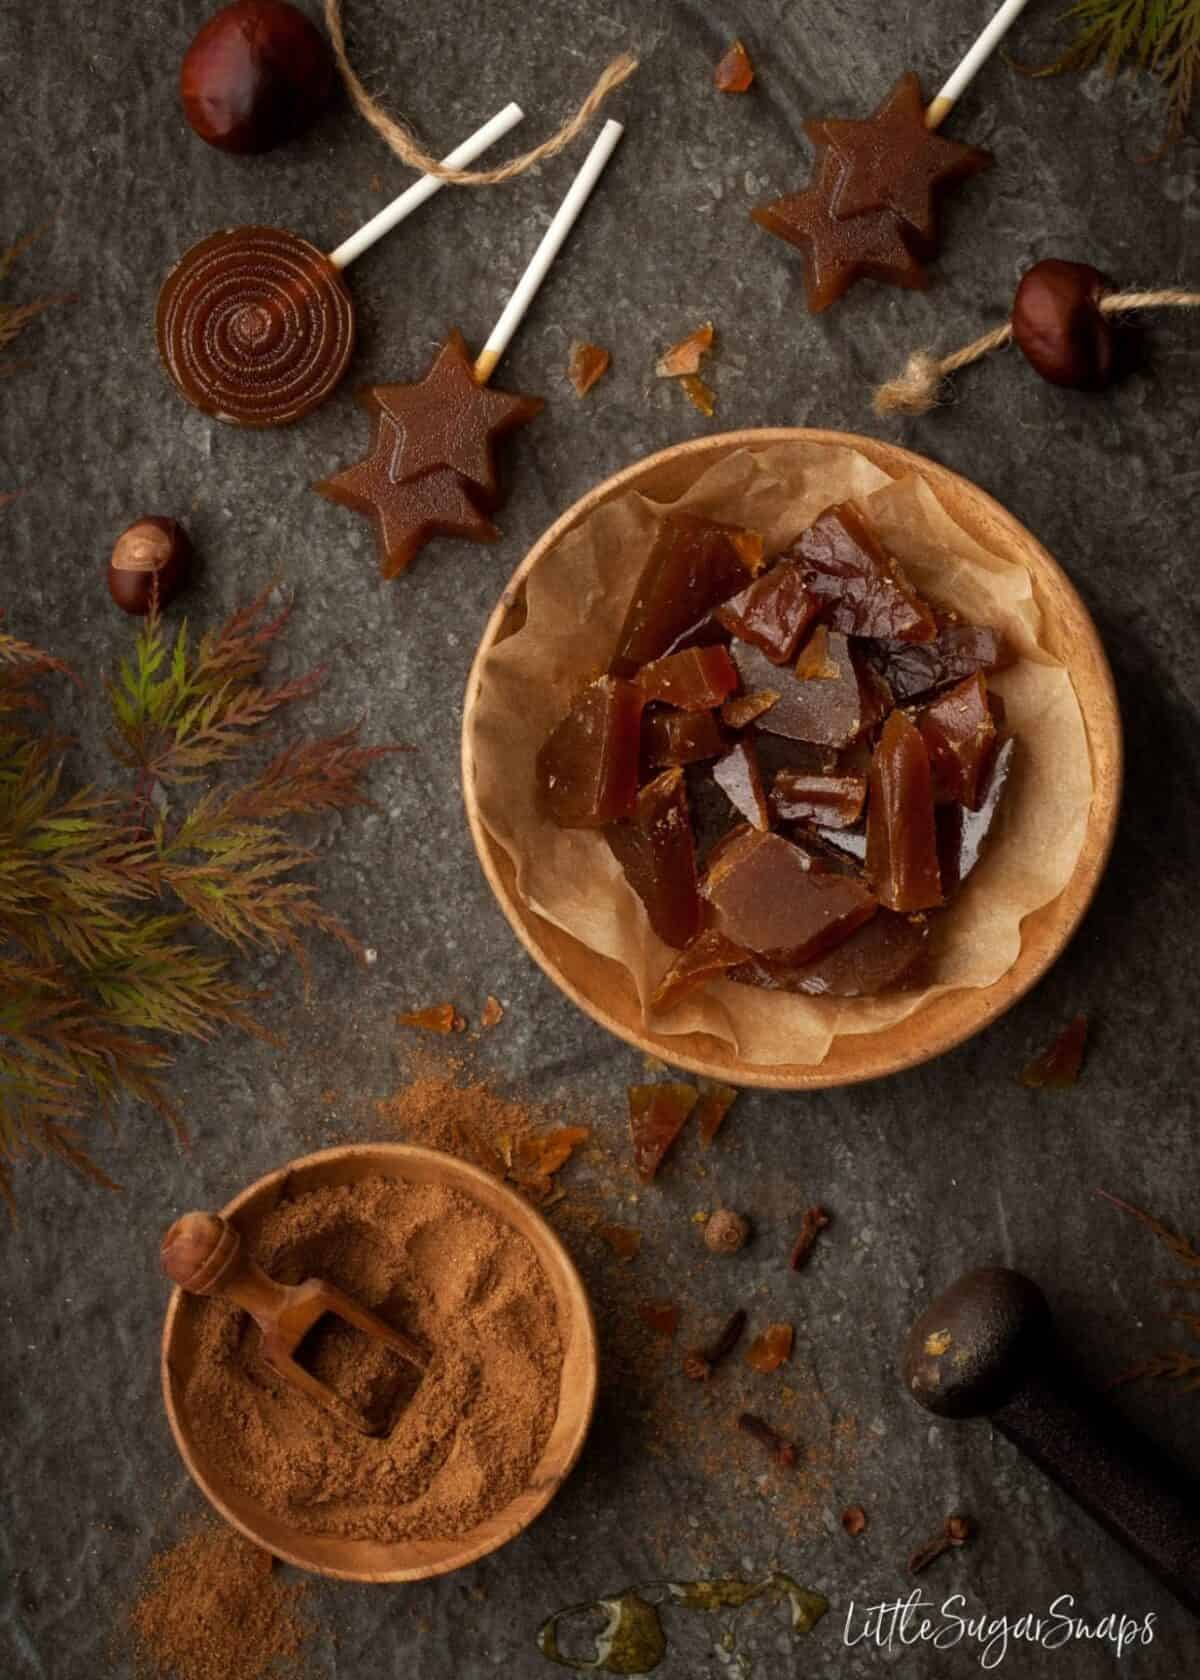 Pumpkin Spiced Toffee pieces in a wooden bowl with lollipops alongside.